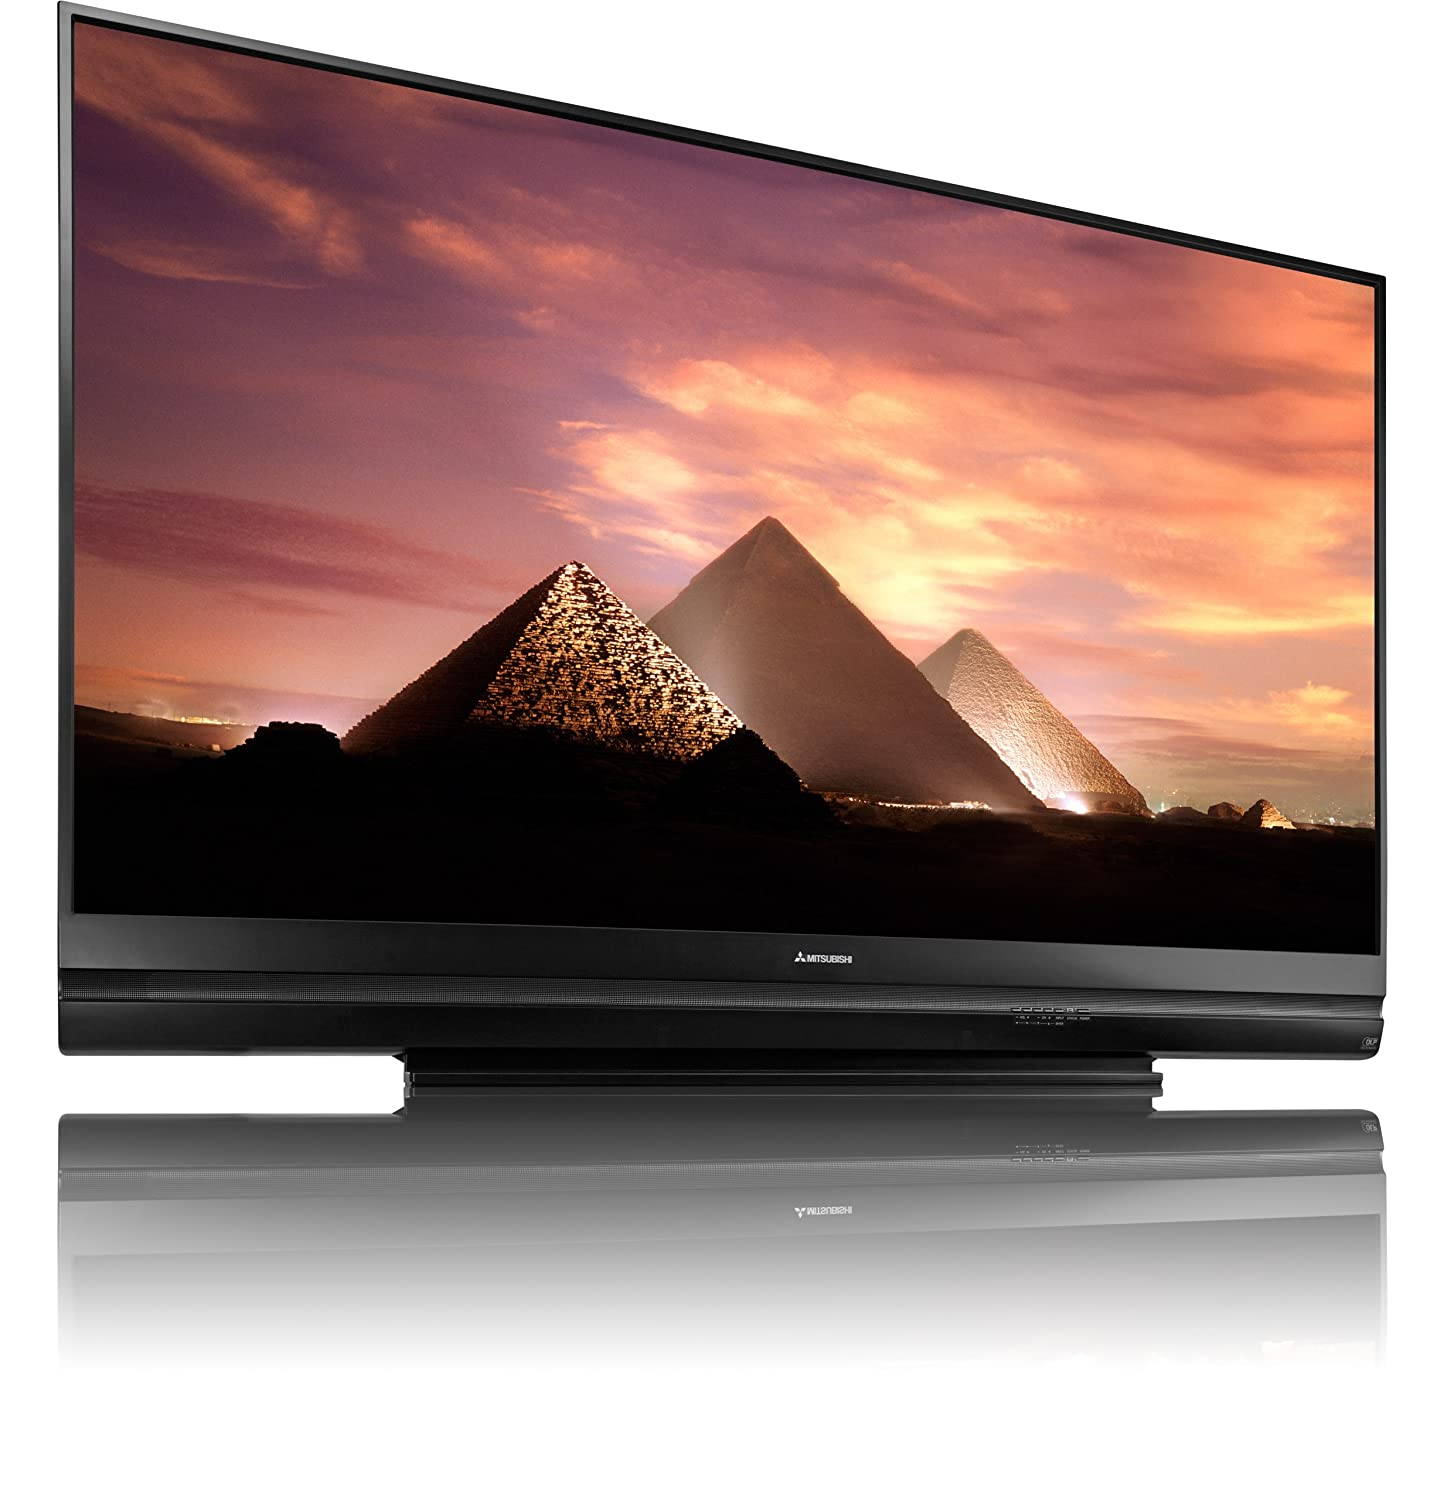 Amazon.com: Mitsubishi WD73642 73-Inch 3D DLP Home Cinema HDTV (2012